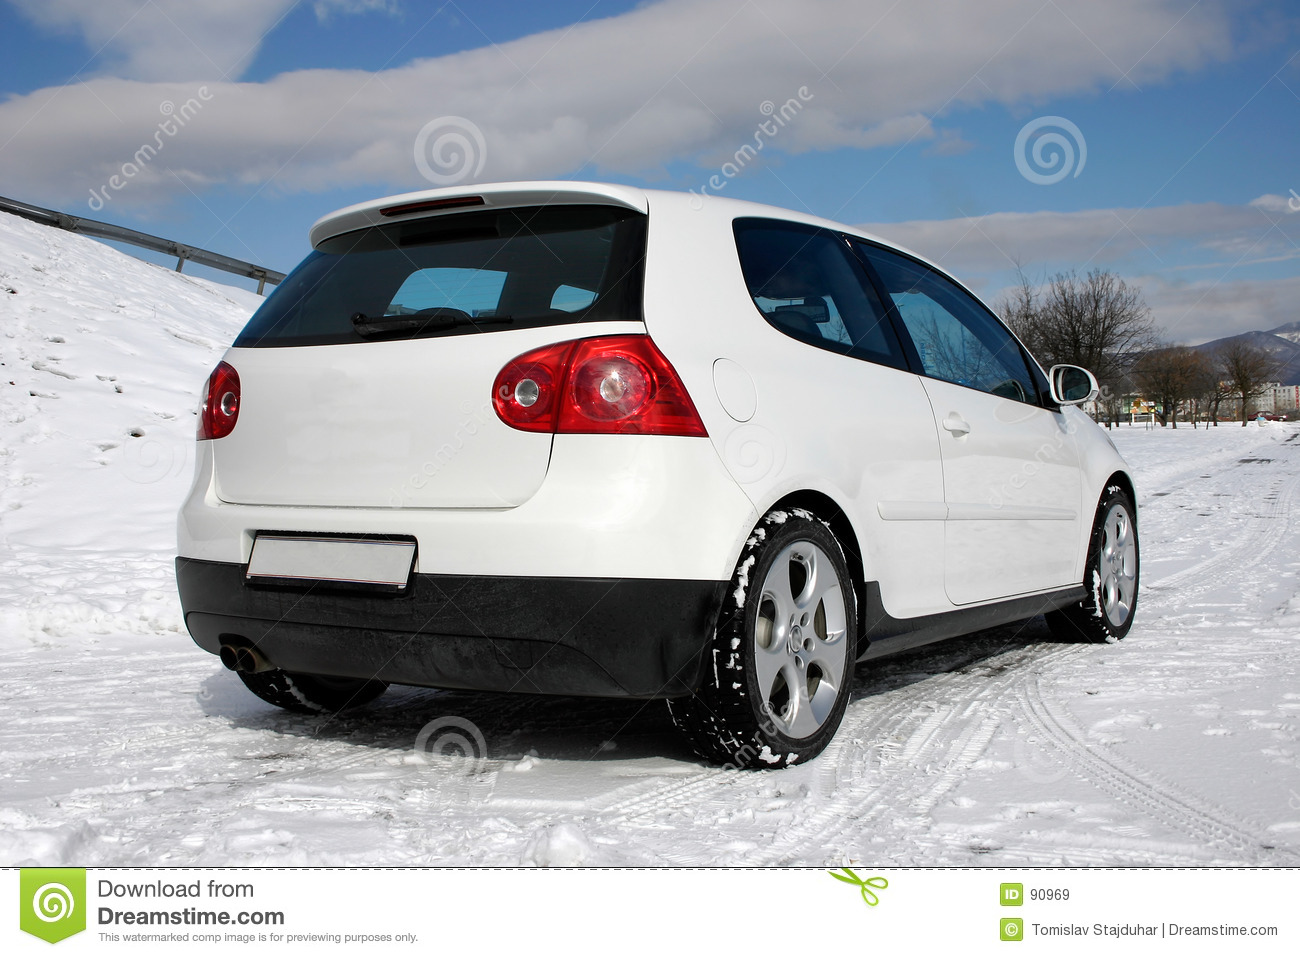 Do golfa gti vw z tyłu